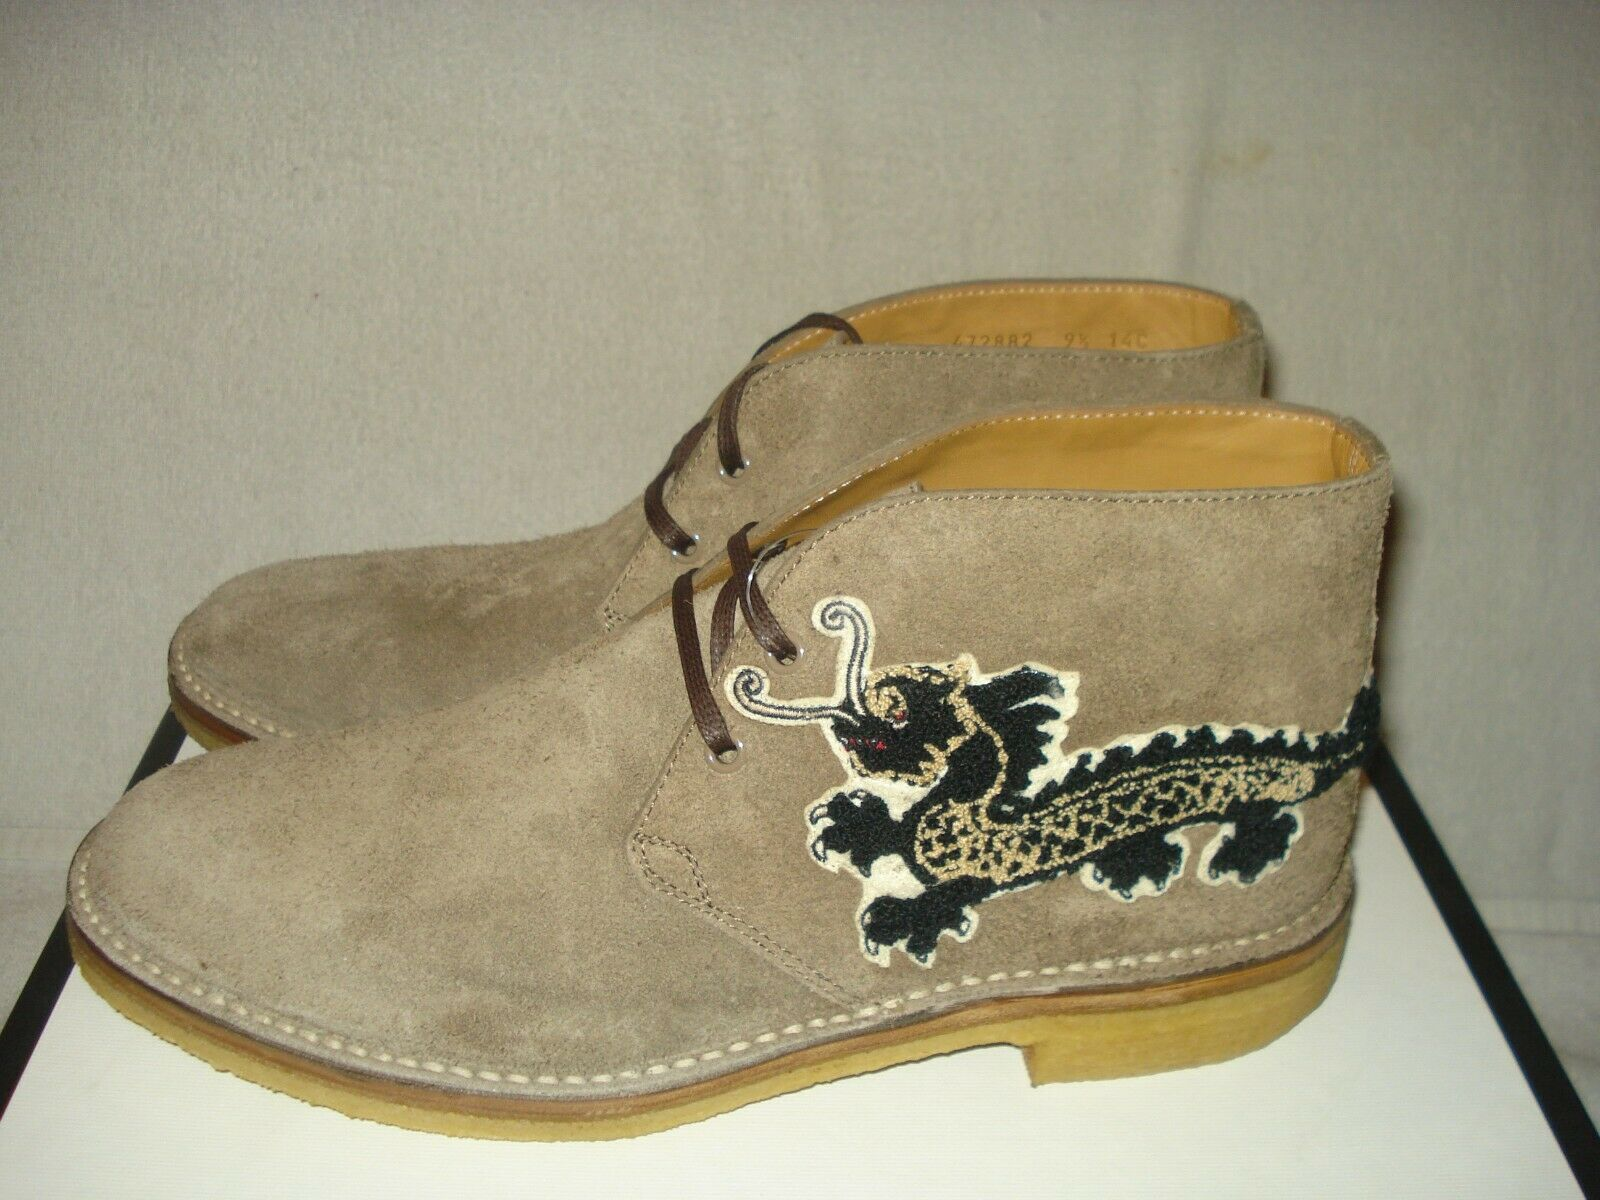 226a33958 100 Auth Men Gucci Moreau Embroidered Chukka Suede BOOTS UK 9/us 10 for  sale online | eBay